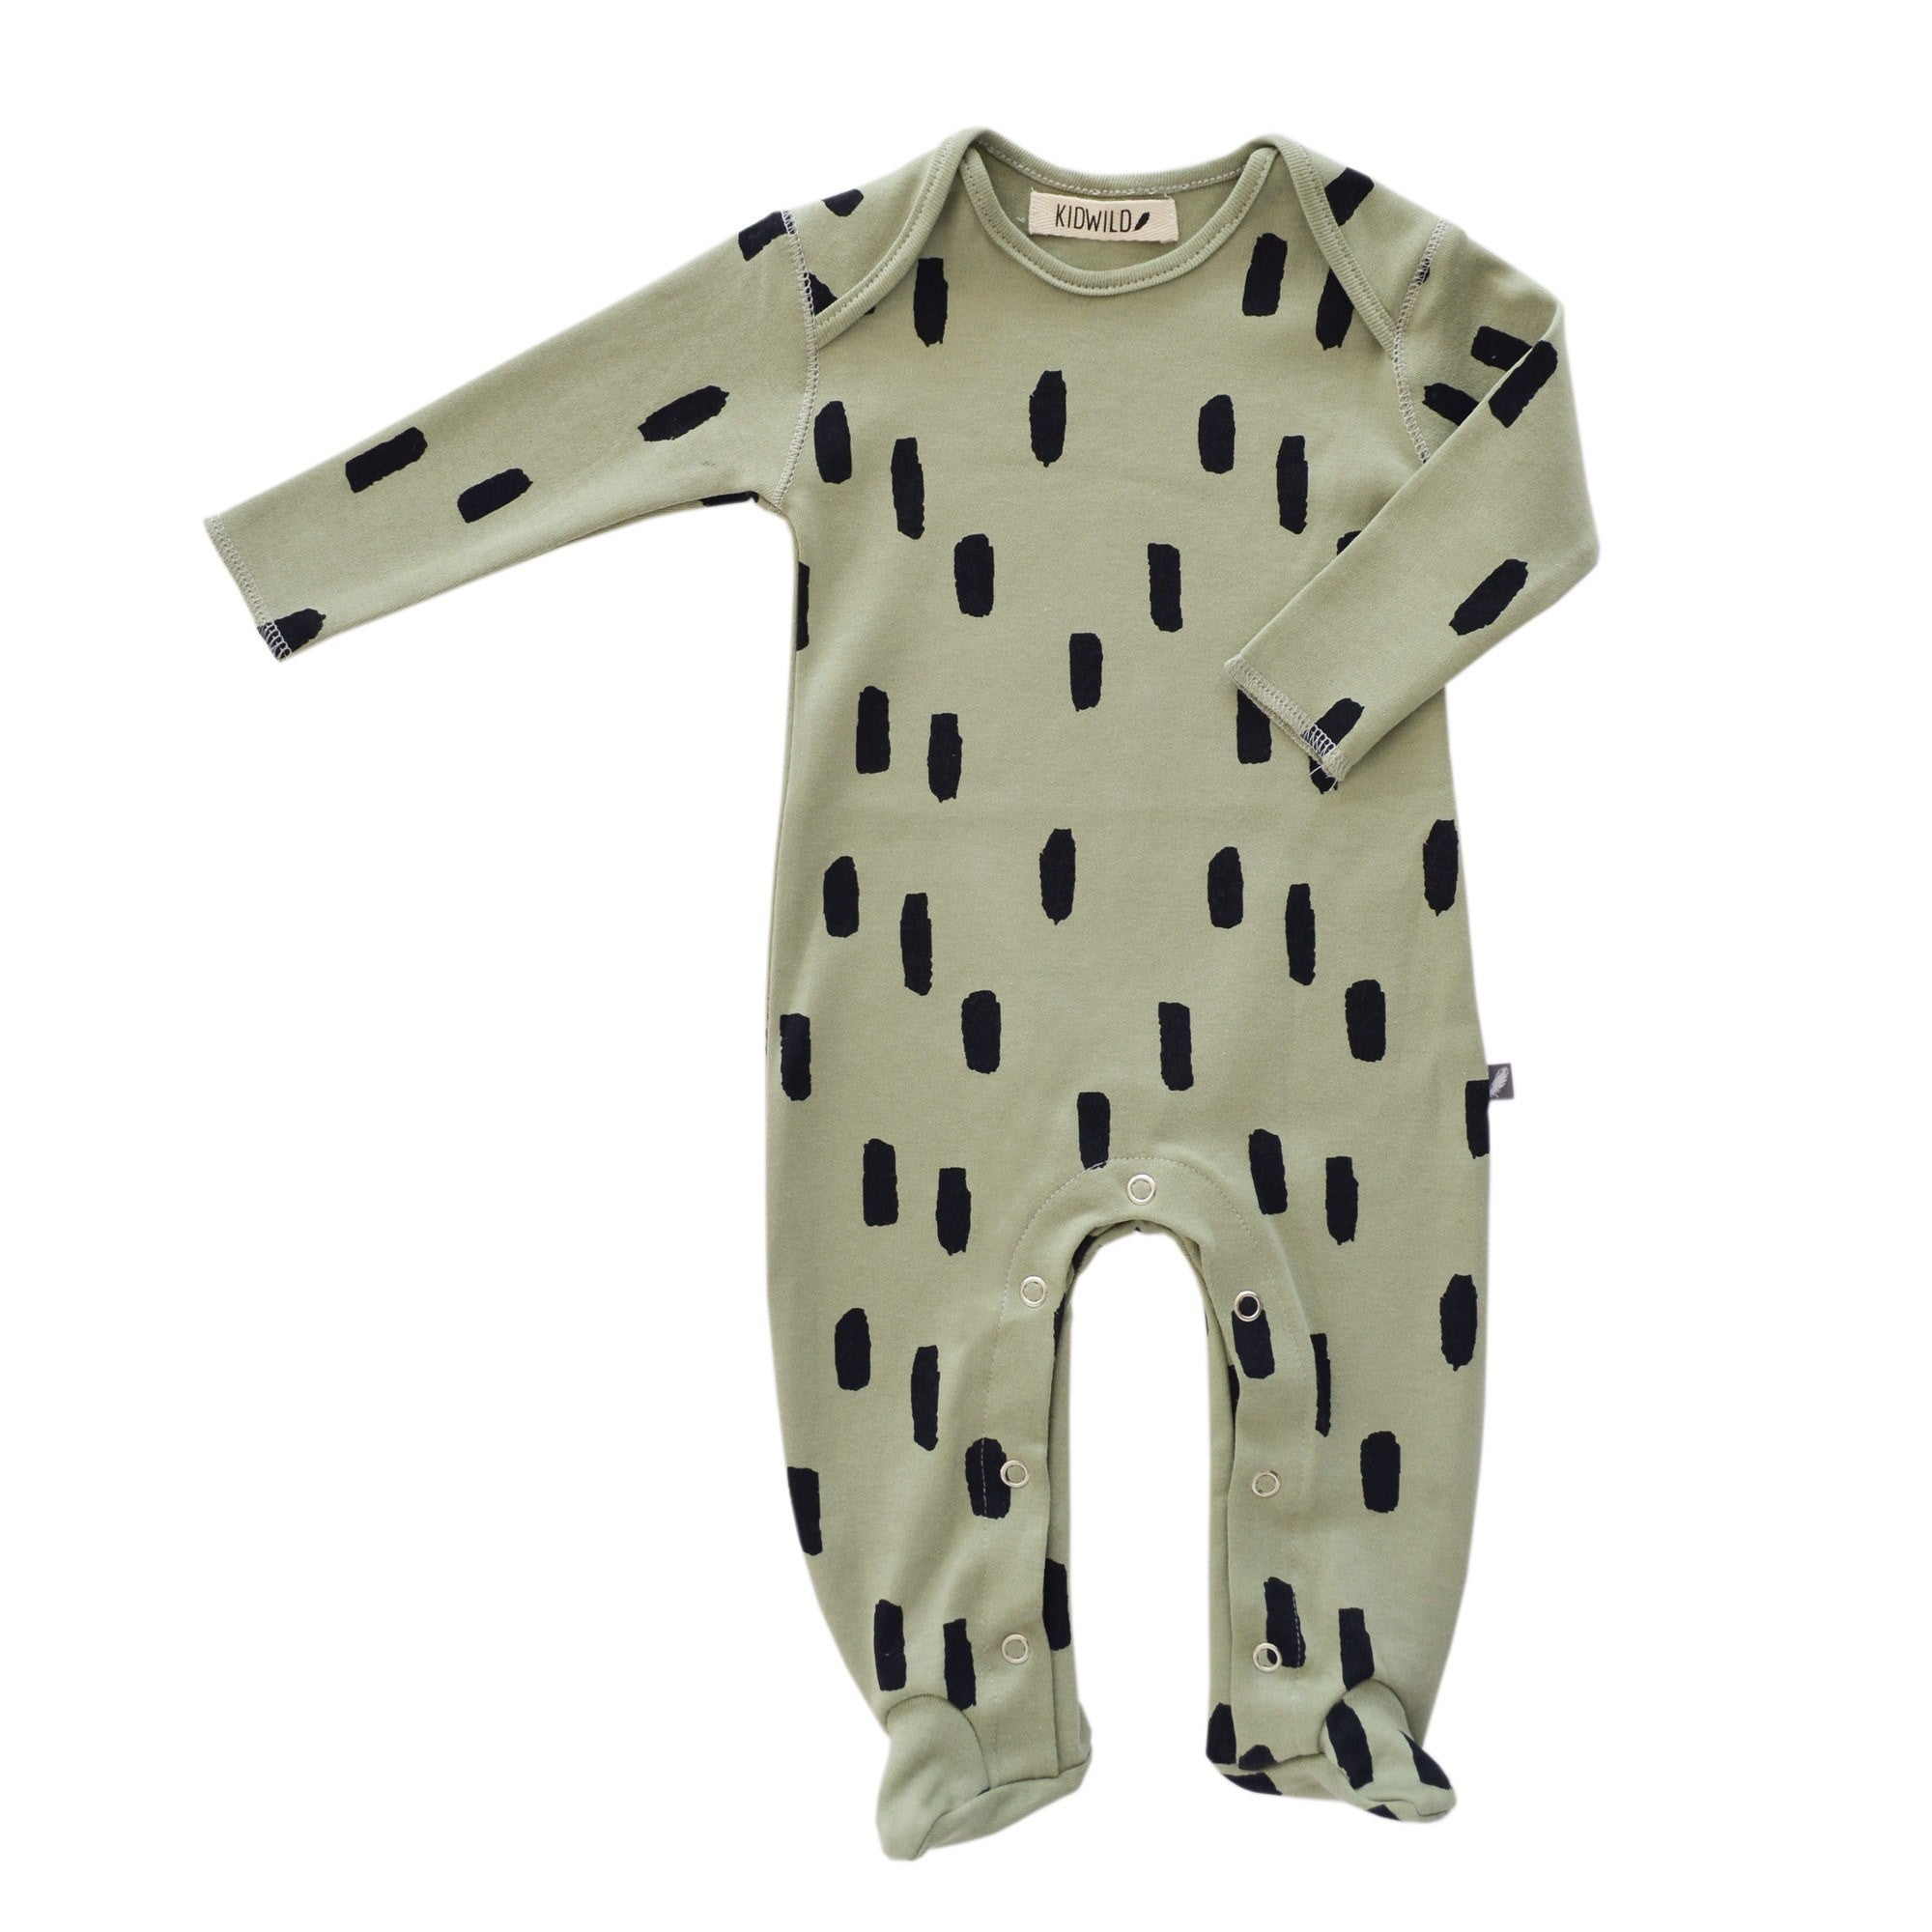 "Kidwild Organic ""Little Wild One"" Layette Gift Set - Spots Brown"